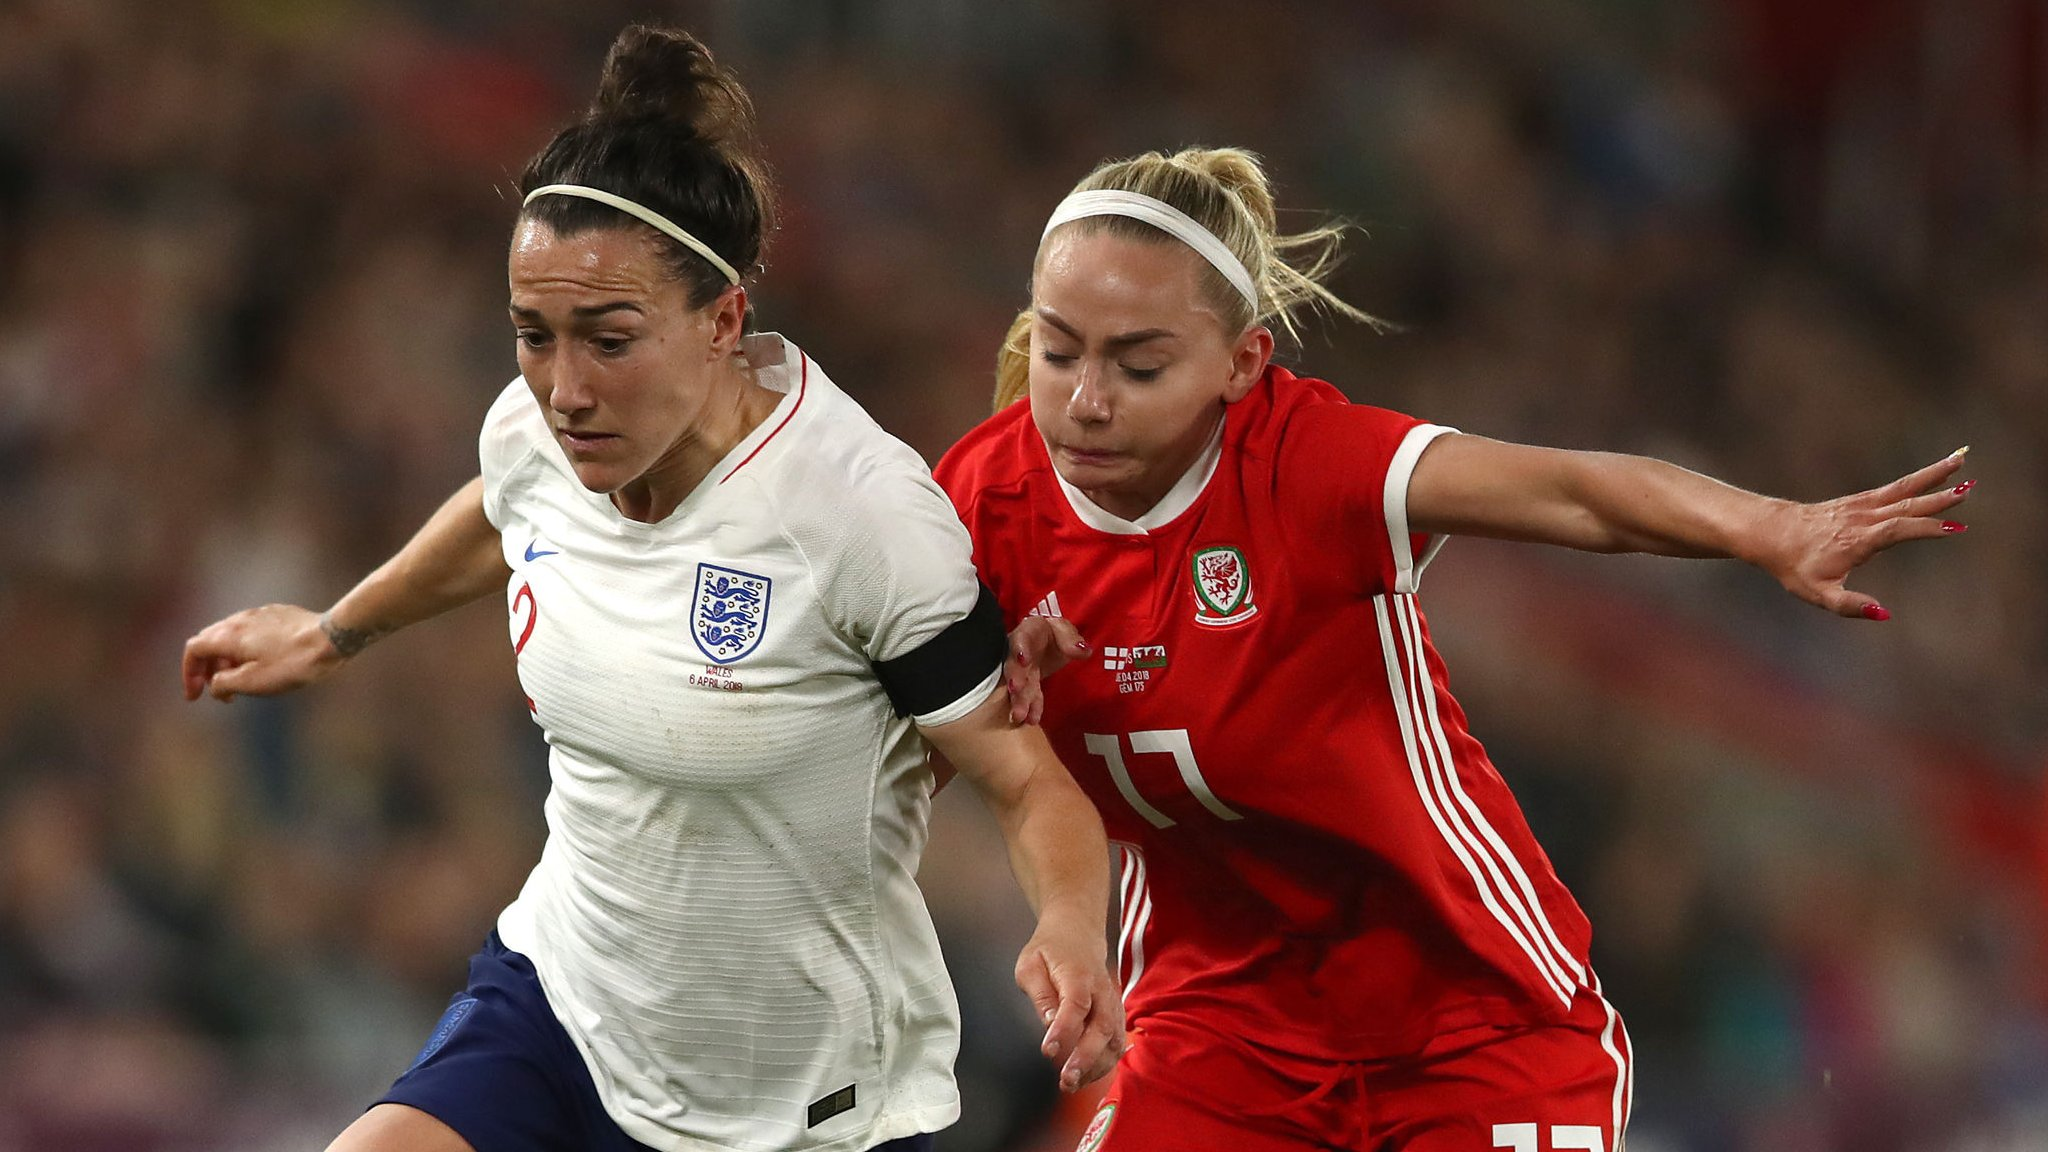 Wales women hold Neville's England in World Cup qualifier